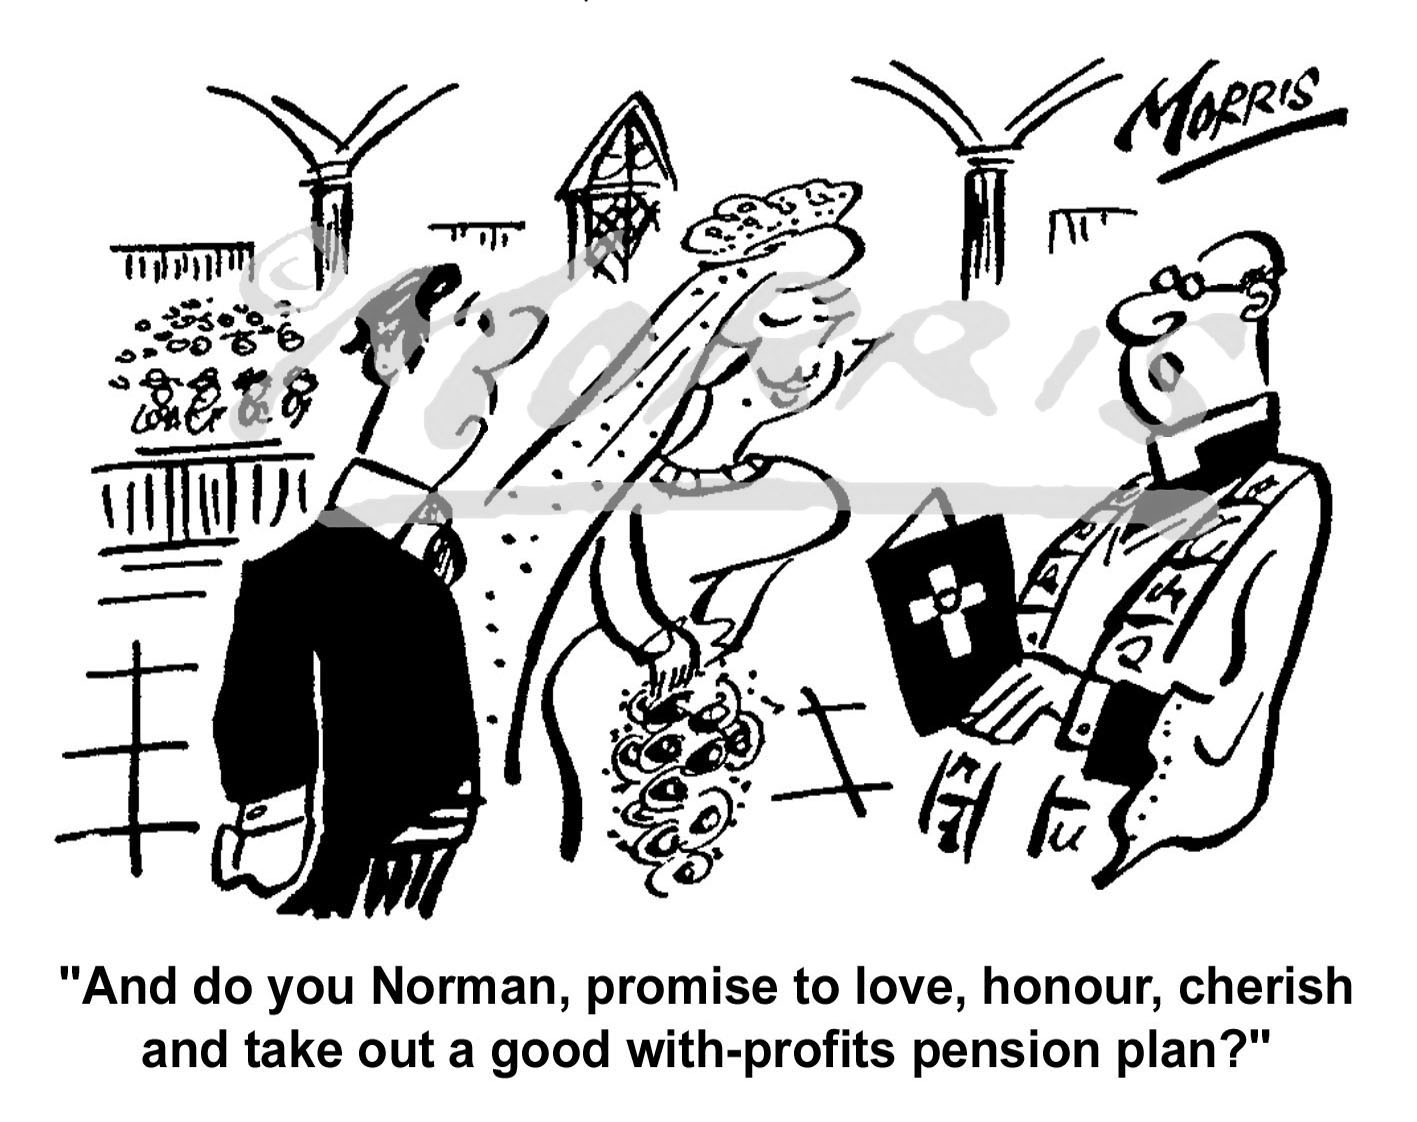 With profits insurance plan cartoon Ref: 0399bw